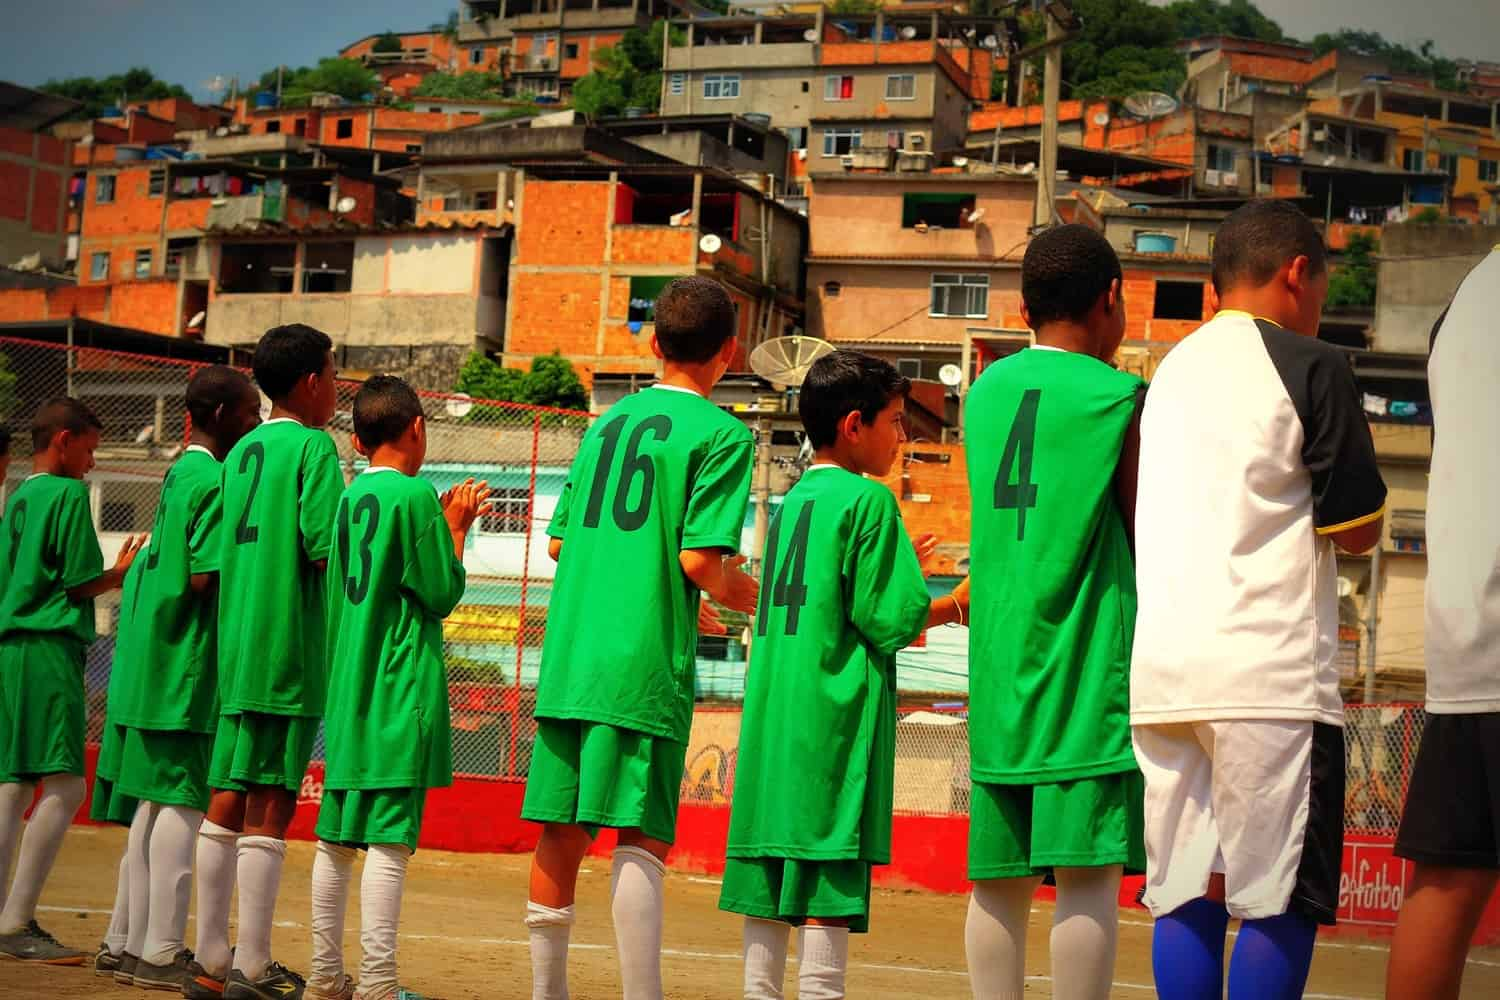 4620fa341 A new football pitch in Brazil built by the nonprofit organization  love.fútbol. ((Courtesy love.fútbol))